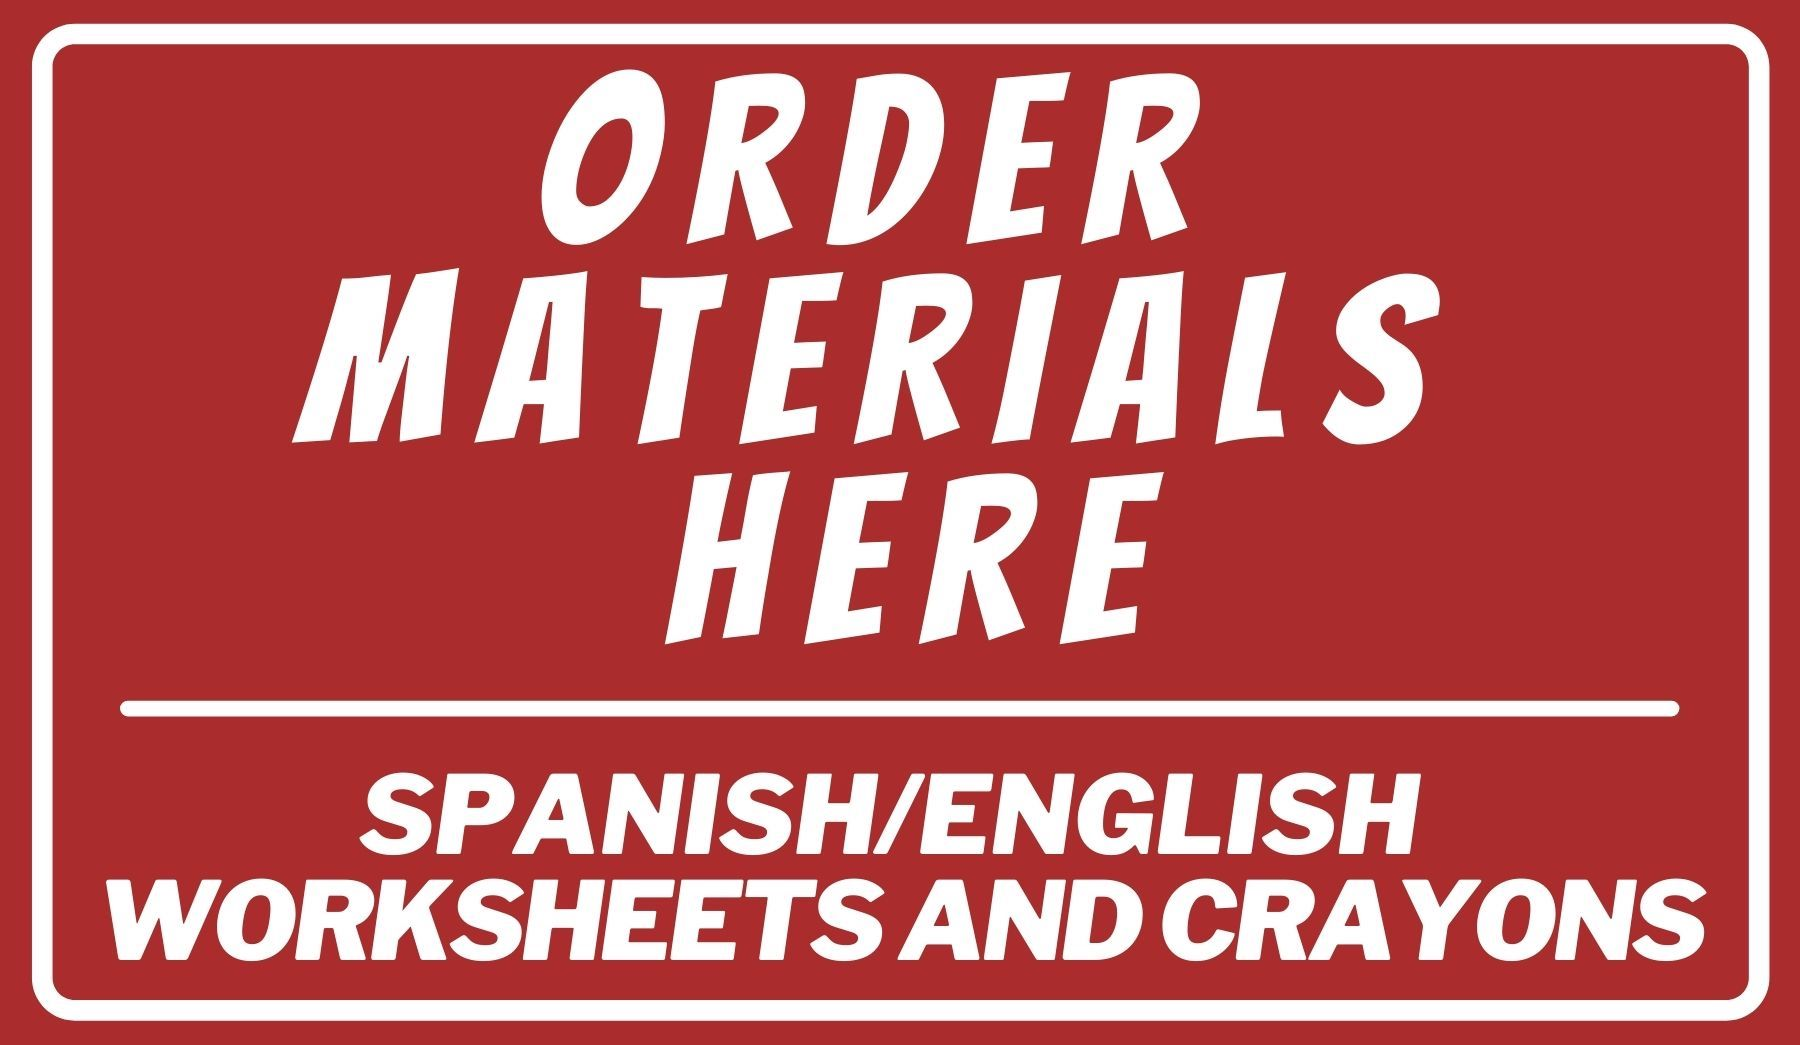 Order materials here